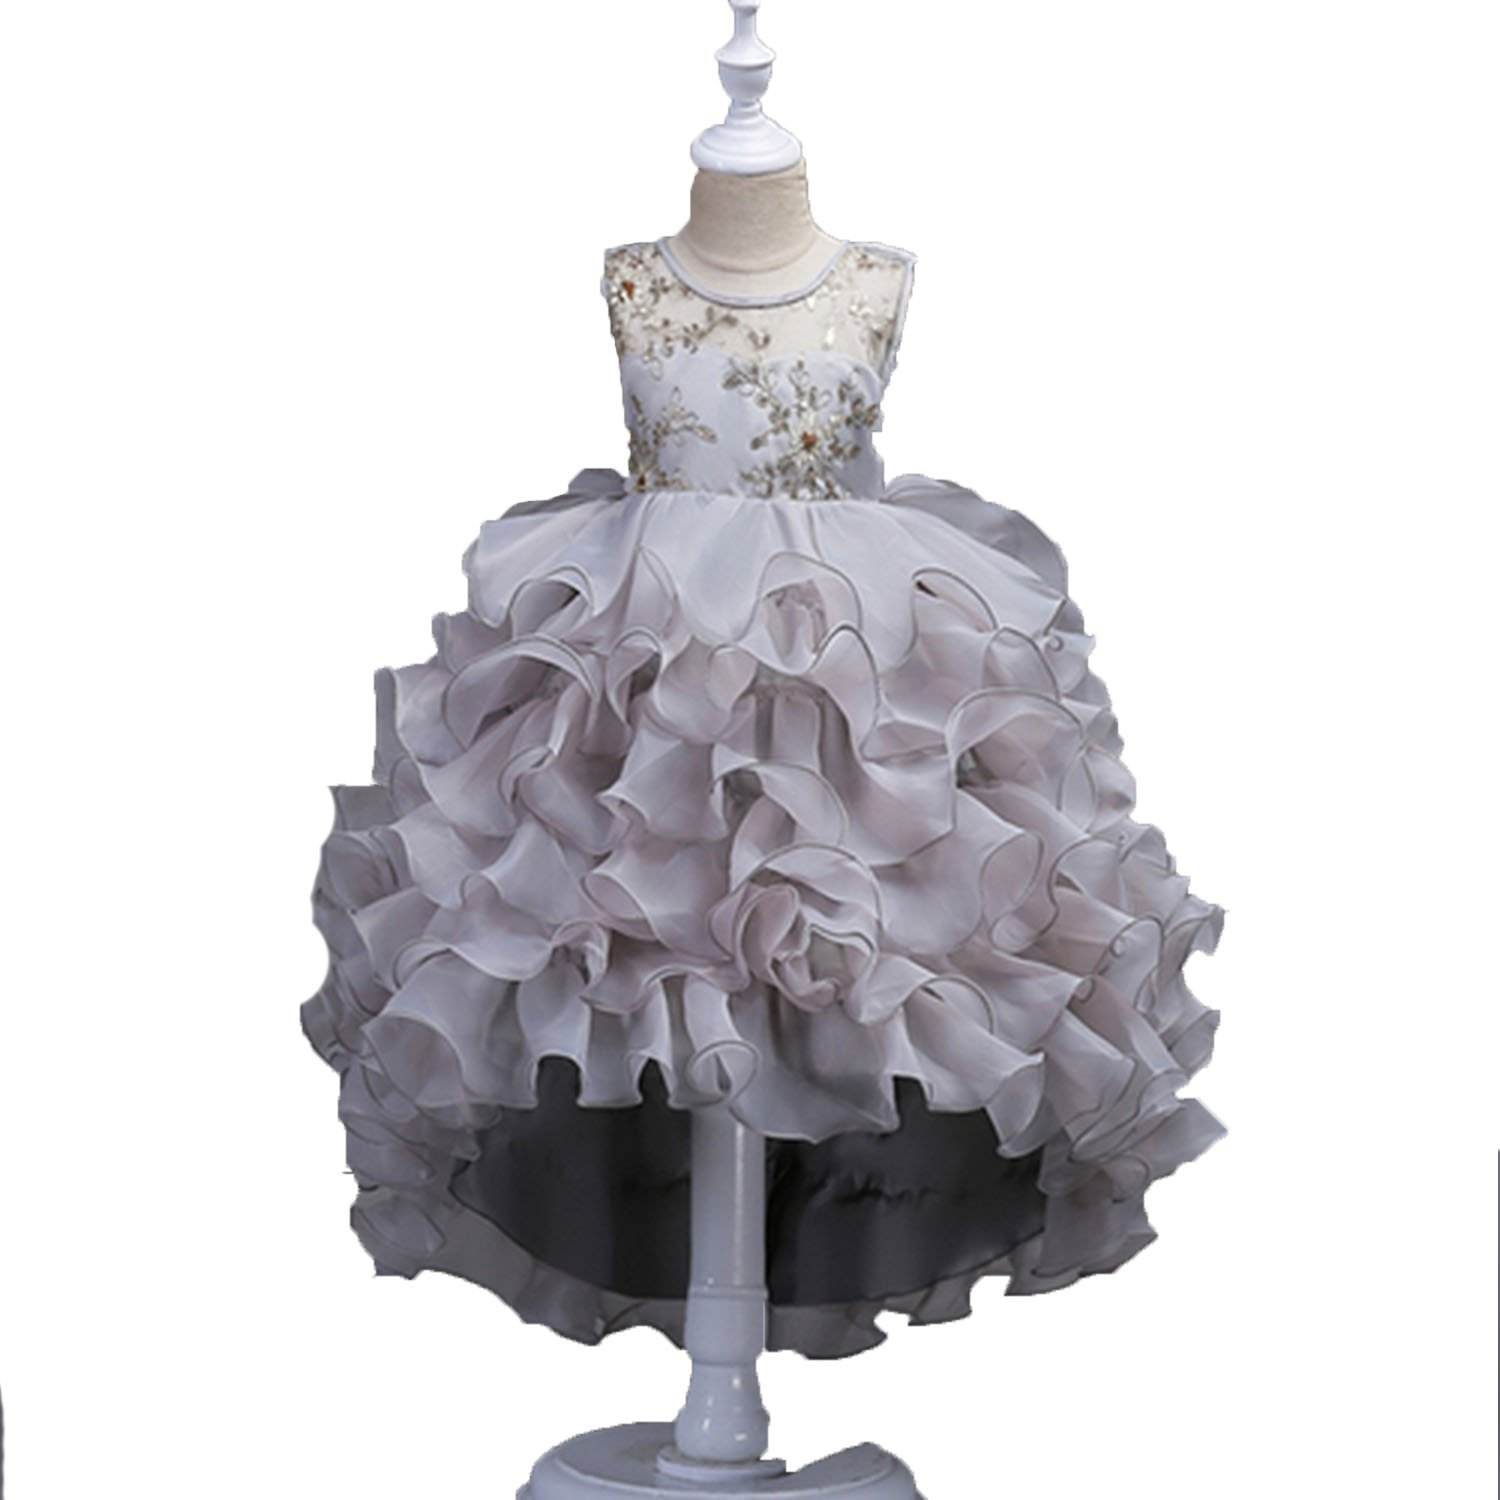 Pretty Sheer O-Neck Ball Gown Flower Girl Dresses High Low Lace Ruffles Kids Evening Gowns Wedding Party Dresses,Silver,Child-8